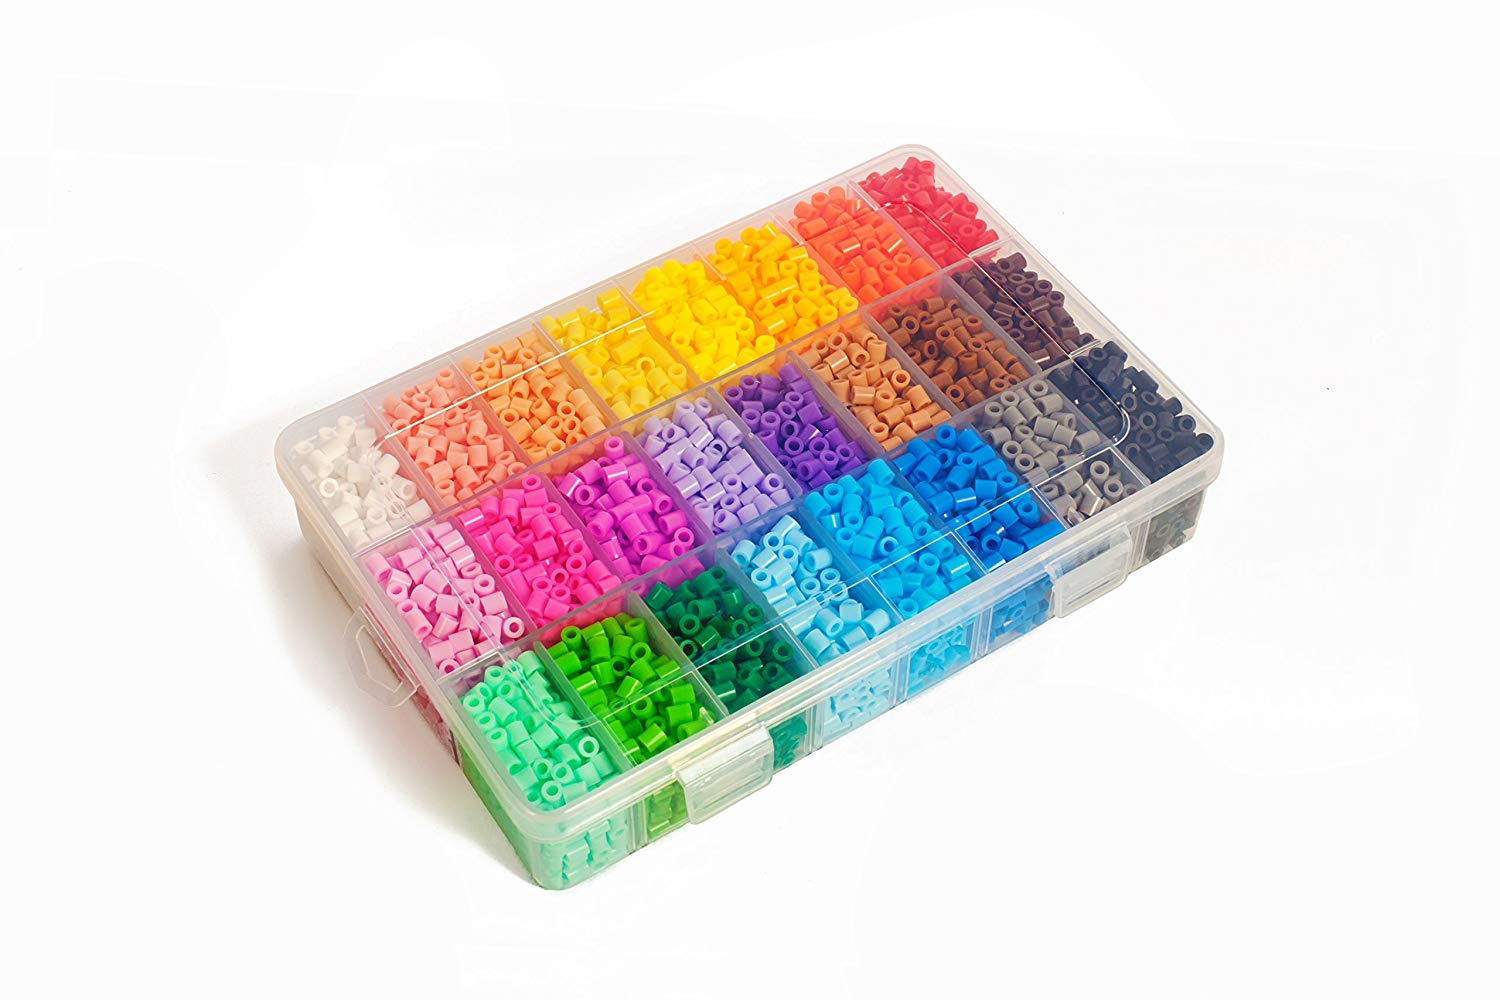 IQ Toys Ironing Beads 5,000 Pieces 24 in a Tray Organizer